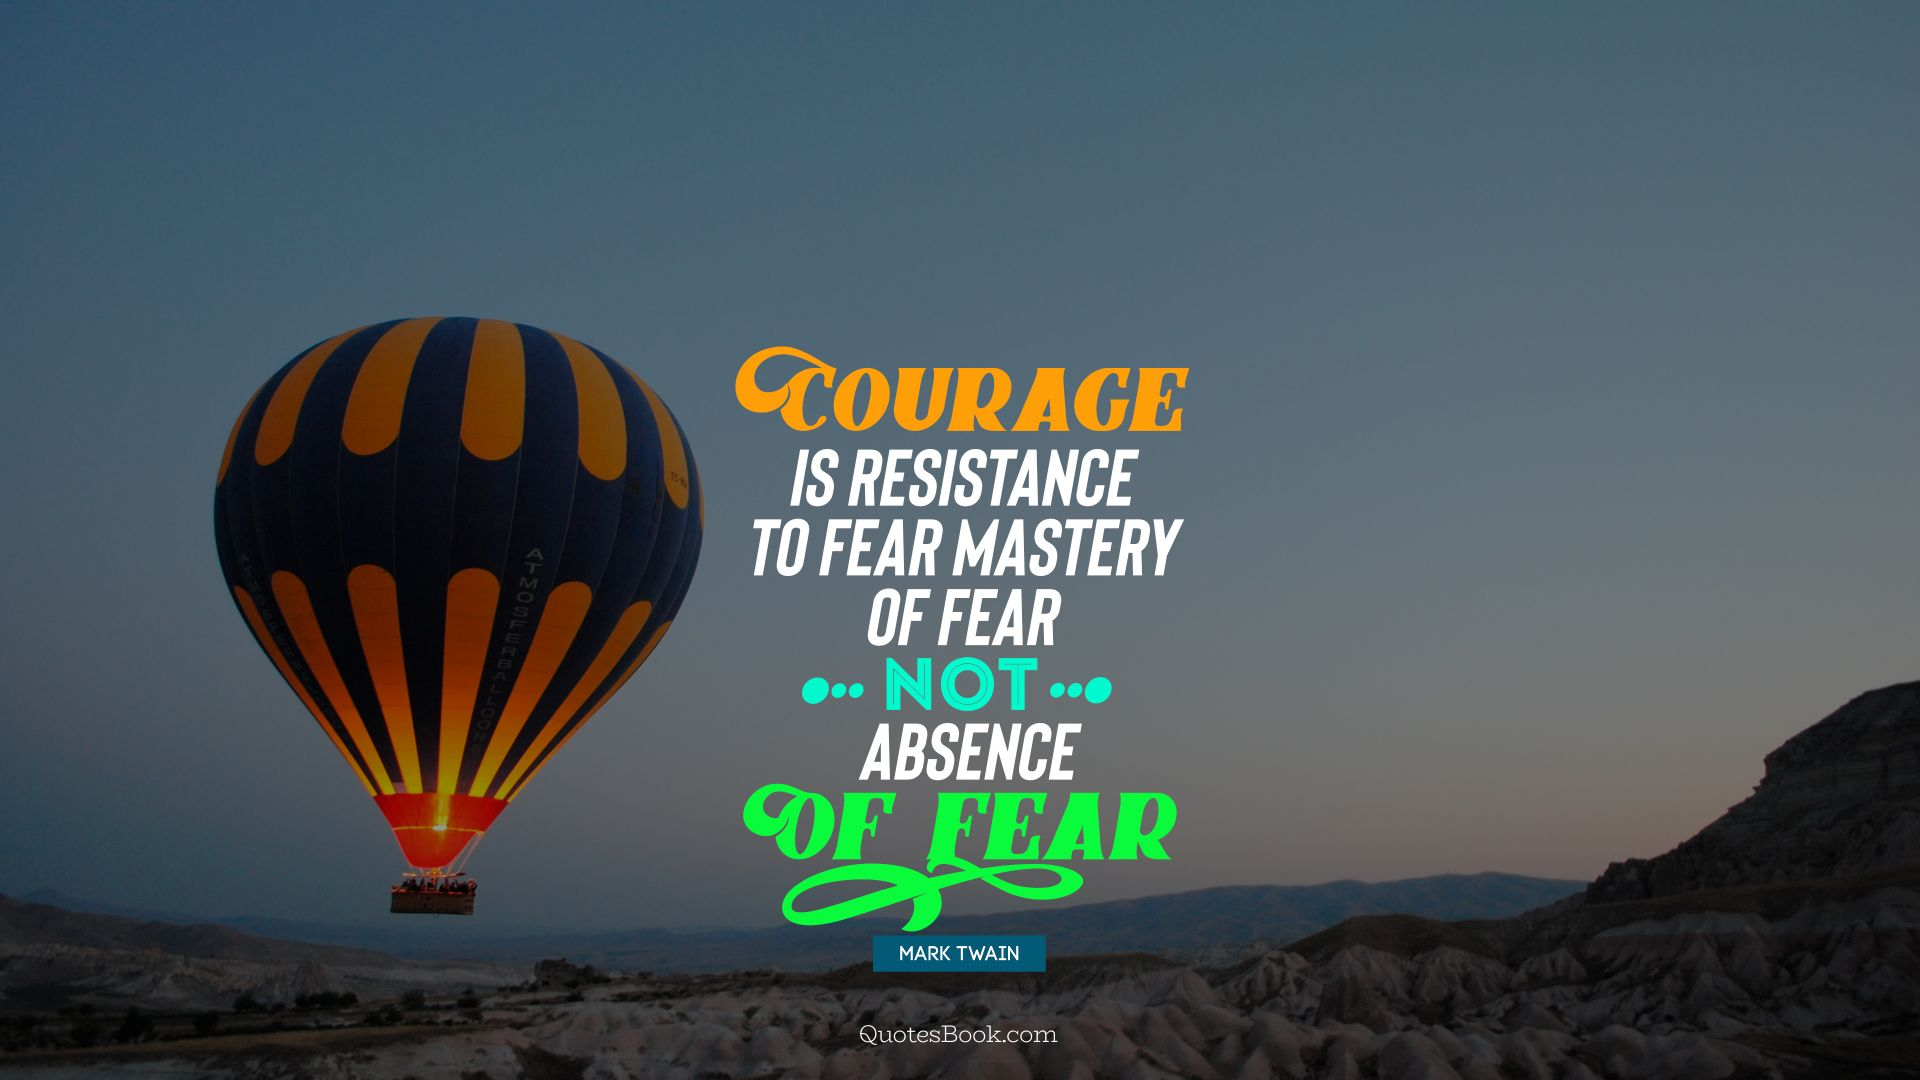 Courage is resistance to fear, mastery of fear, not absence of fear. - Quote by Mark Twain